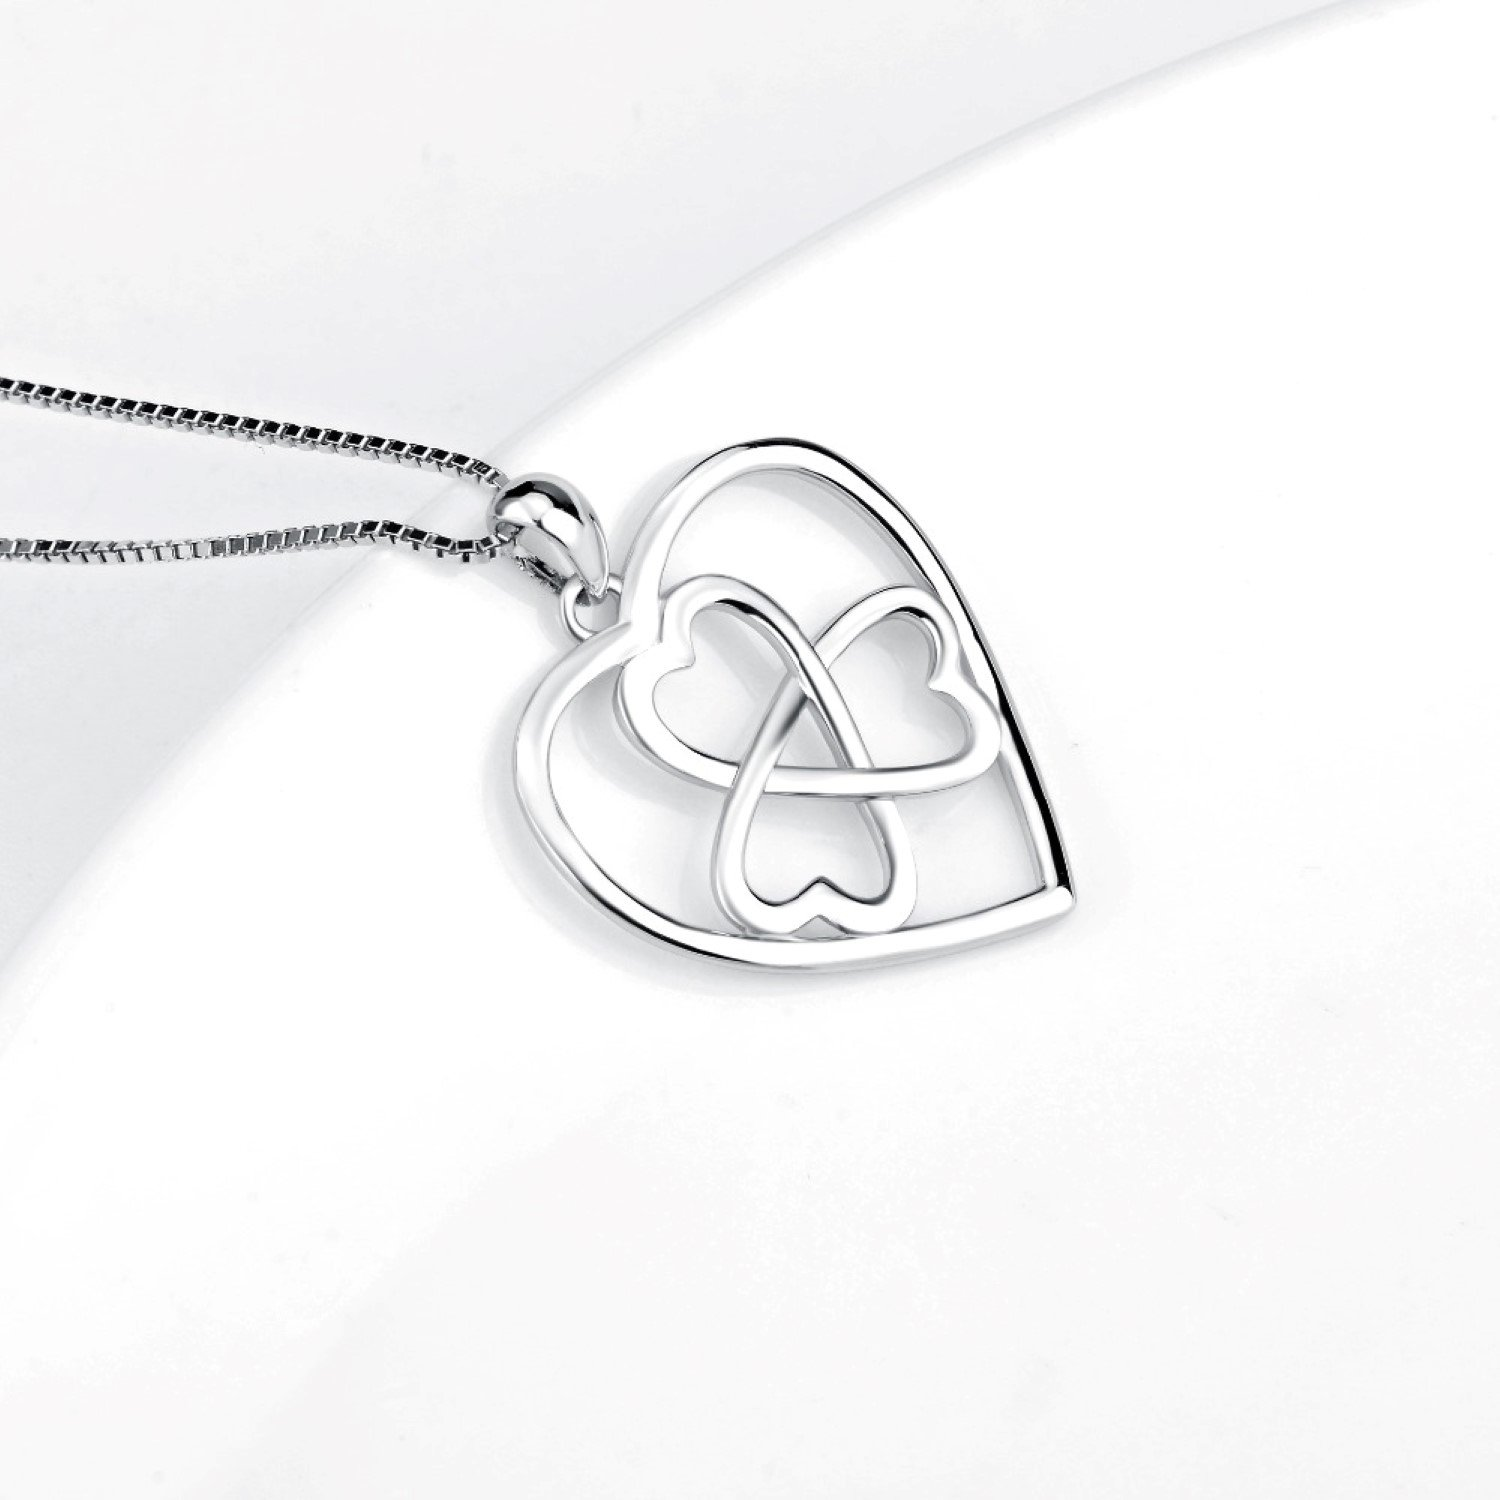 CS-DB Womens Necklaces by Silver Pendant Love Heart knot Charm Girls